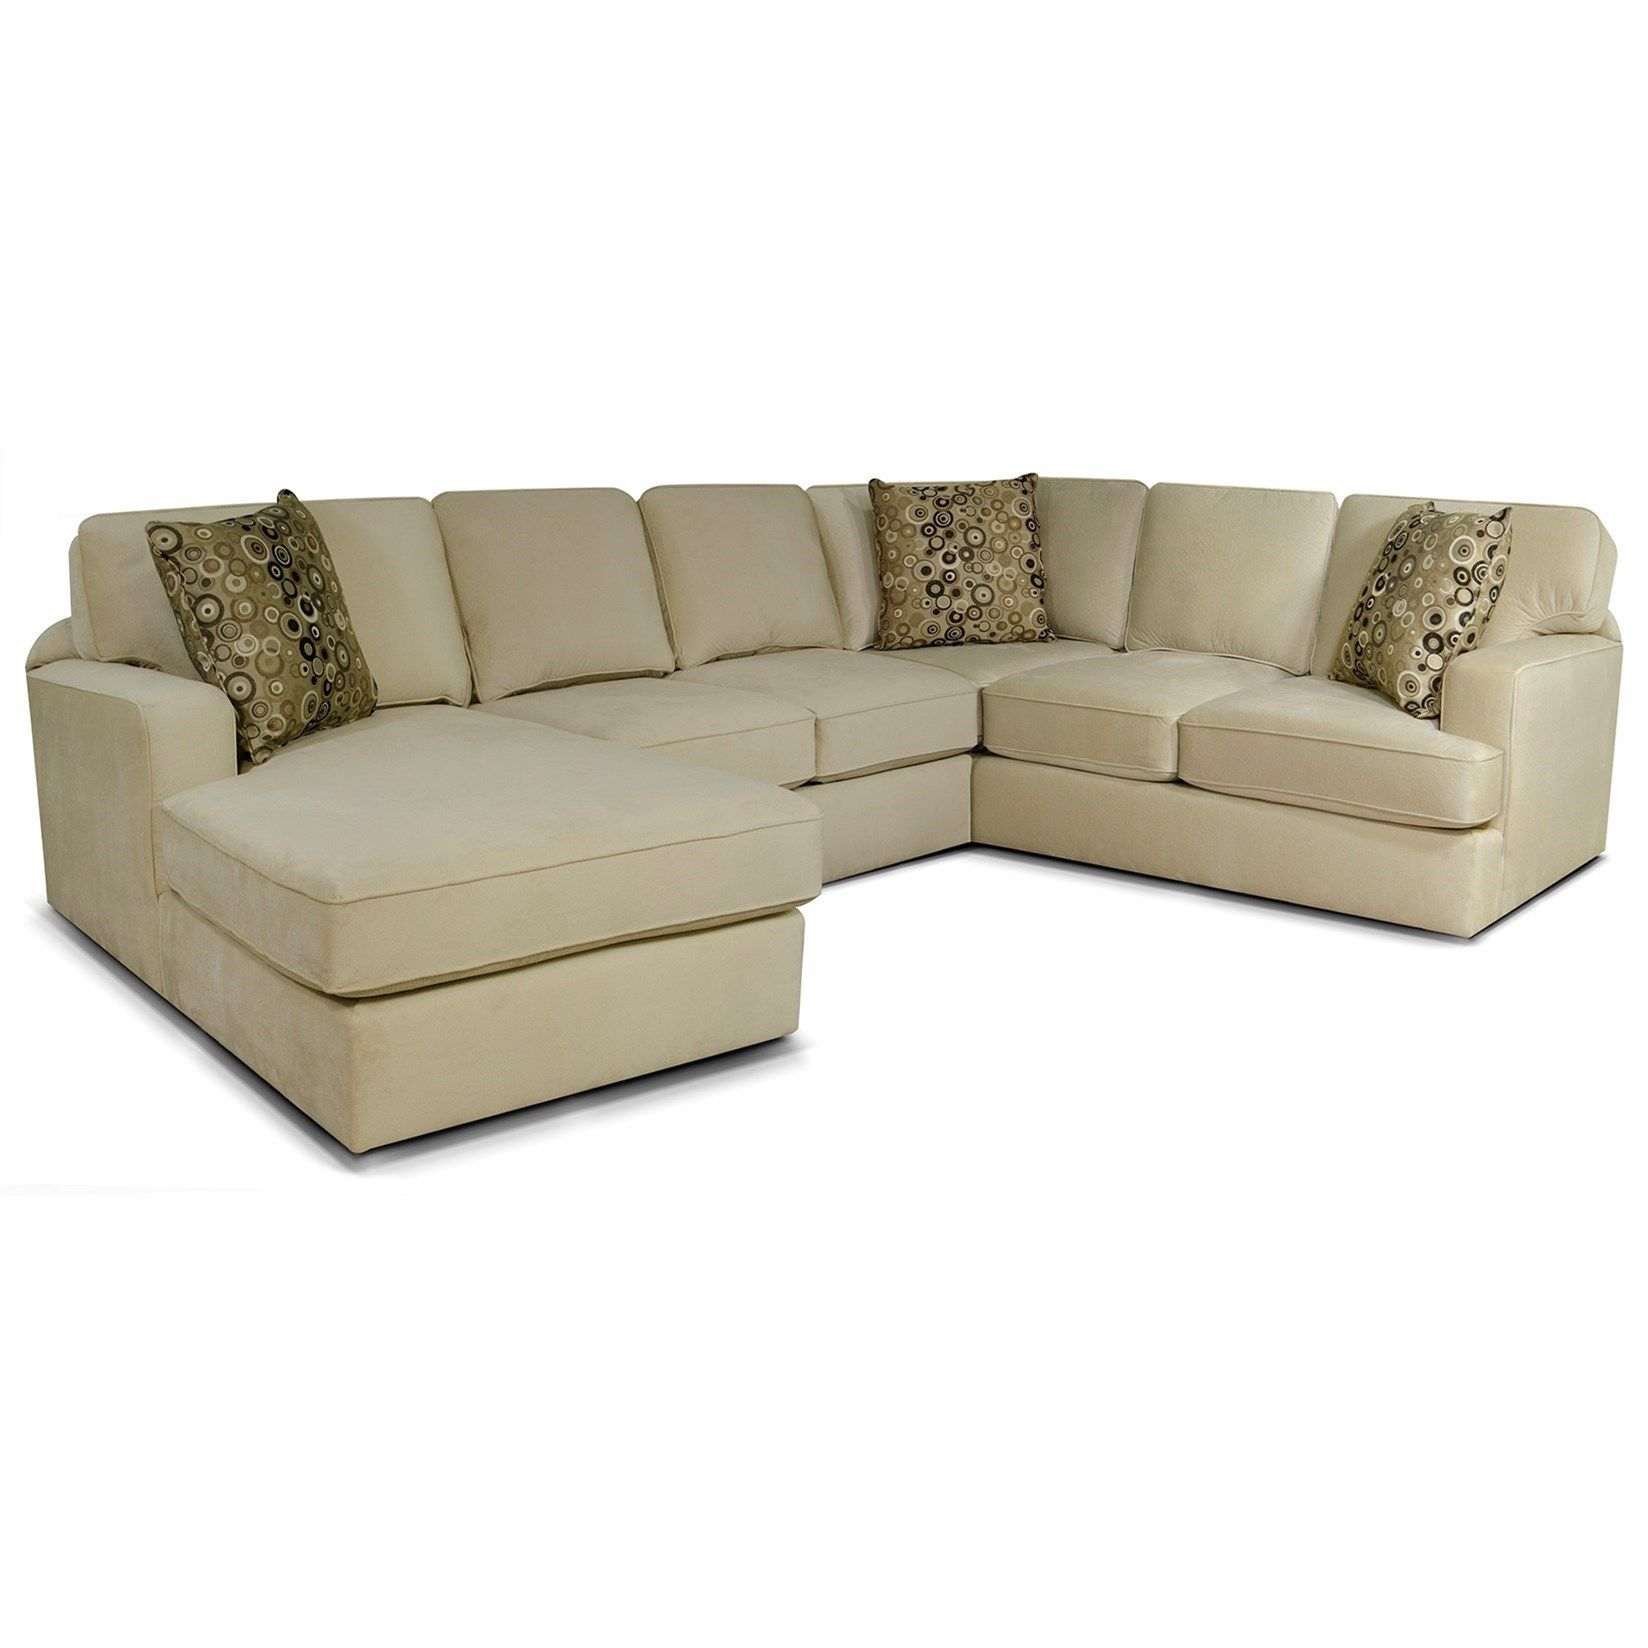 Roxy Casual 3 Piece Sectional By England In 2020 3 Piece